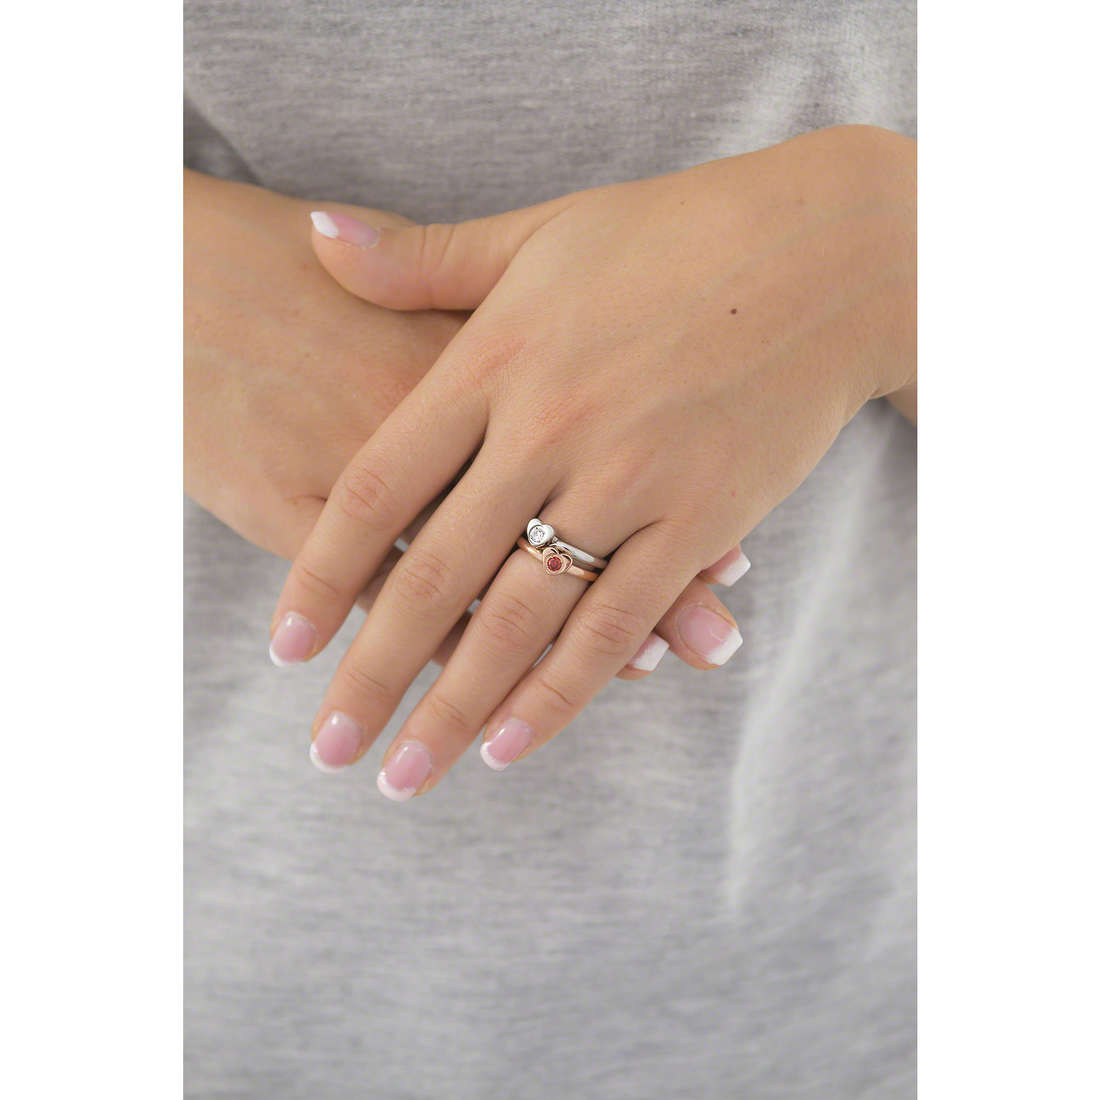 Morellato bagues Love Rings femme SNA32018 indosso